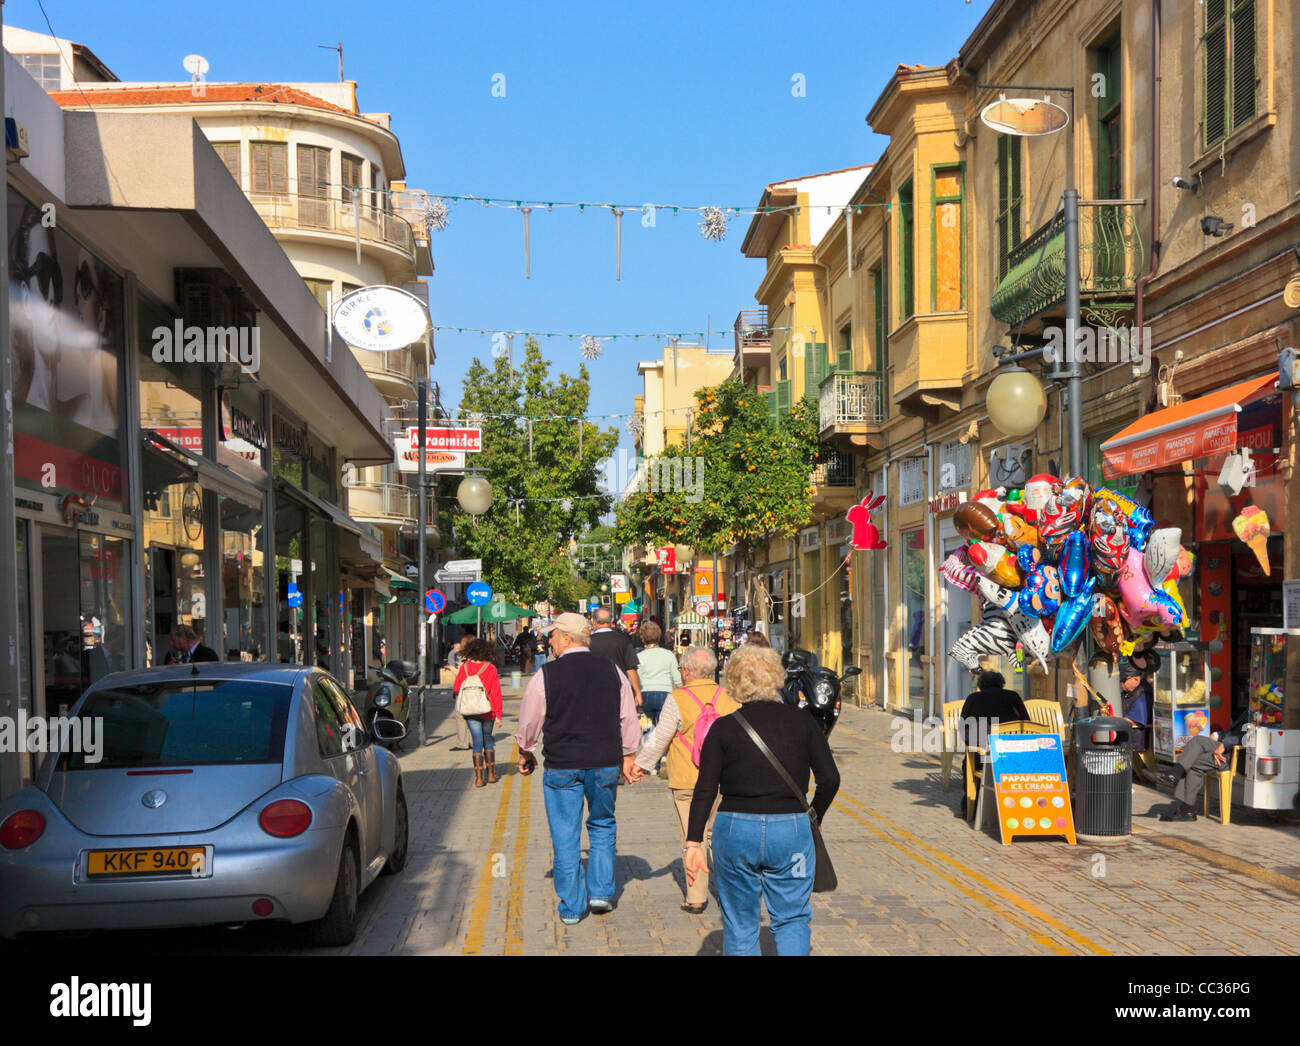 Shopping and Sightseeing in the Old Town of Nicosia, Cyprus - Stock Image